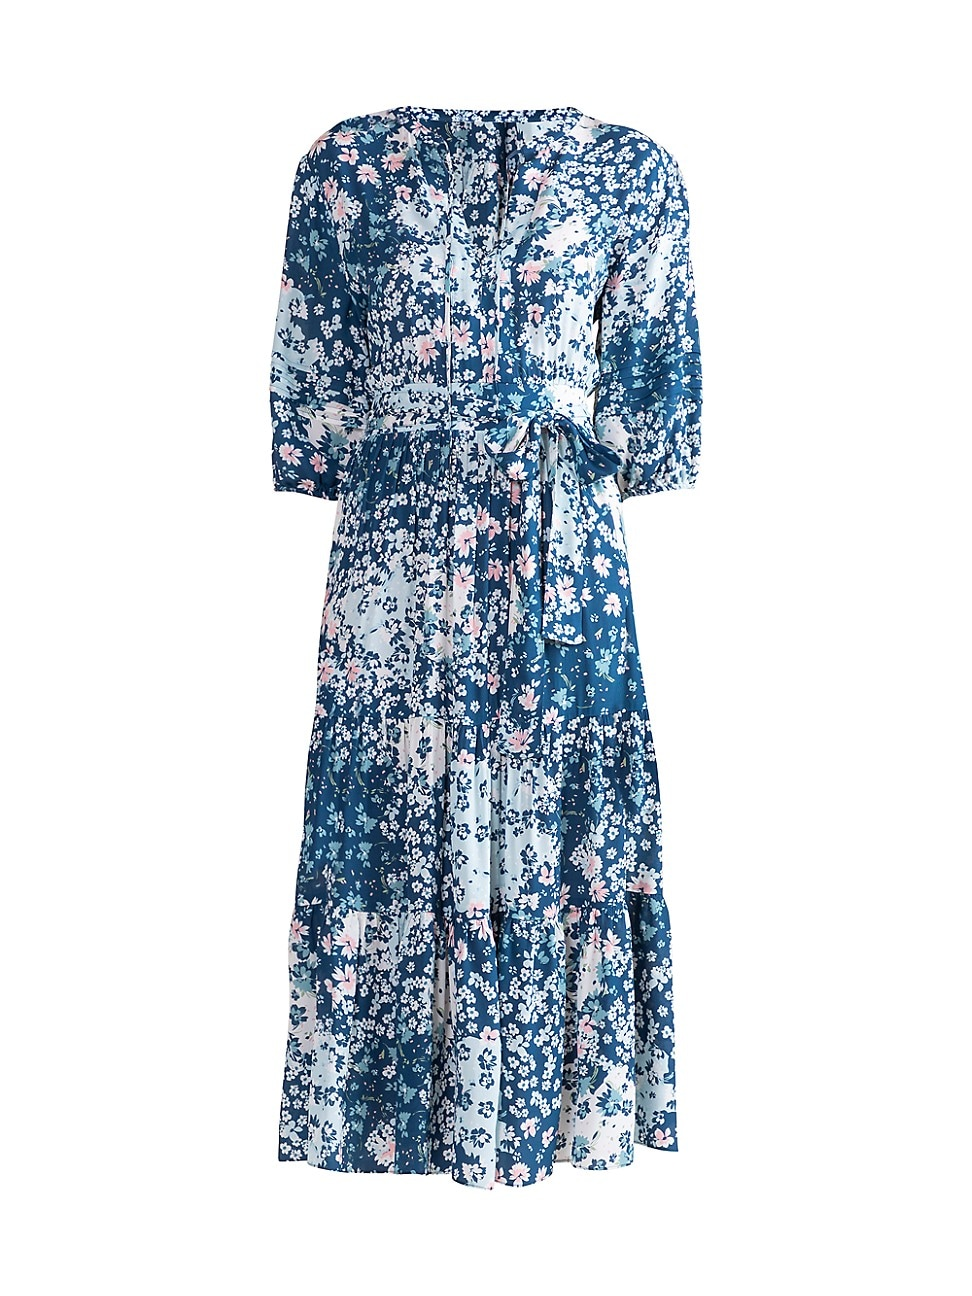 Shoshanna WOMEN'S GRAND FLORAL MIDI DRESS